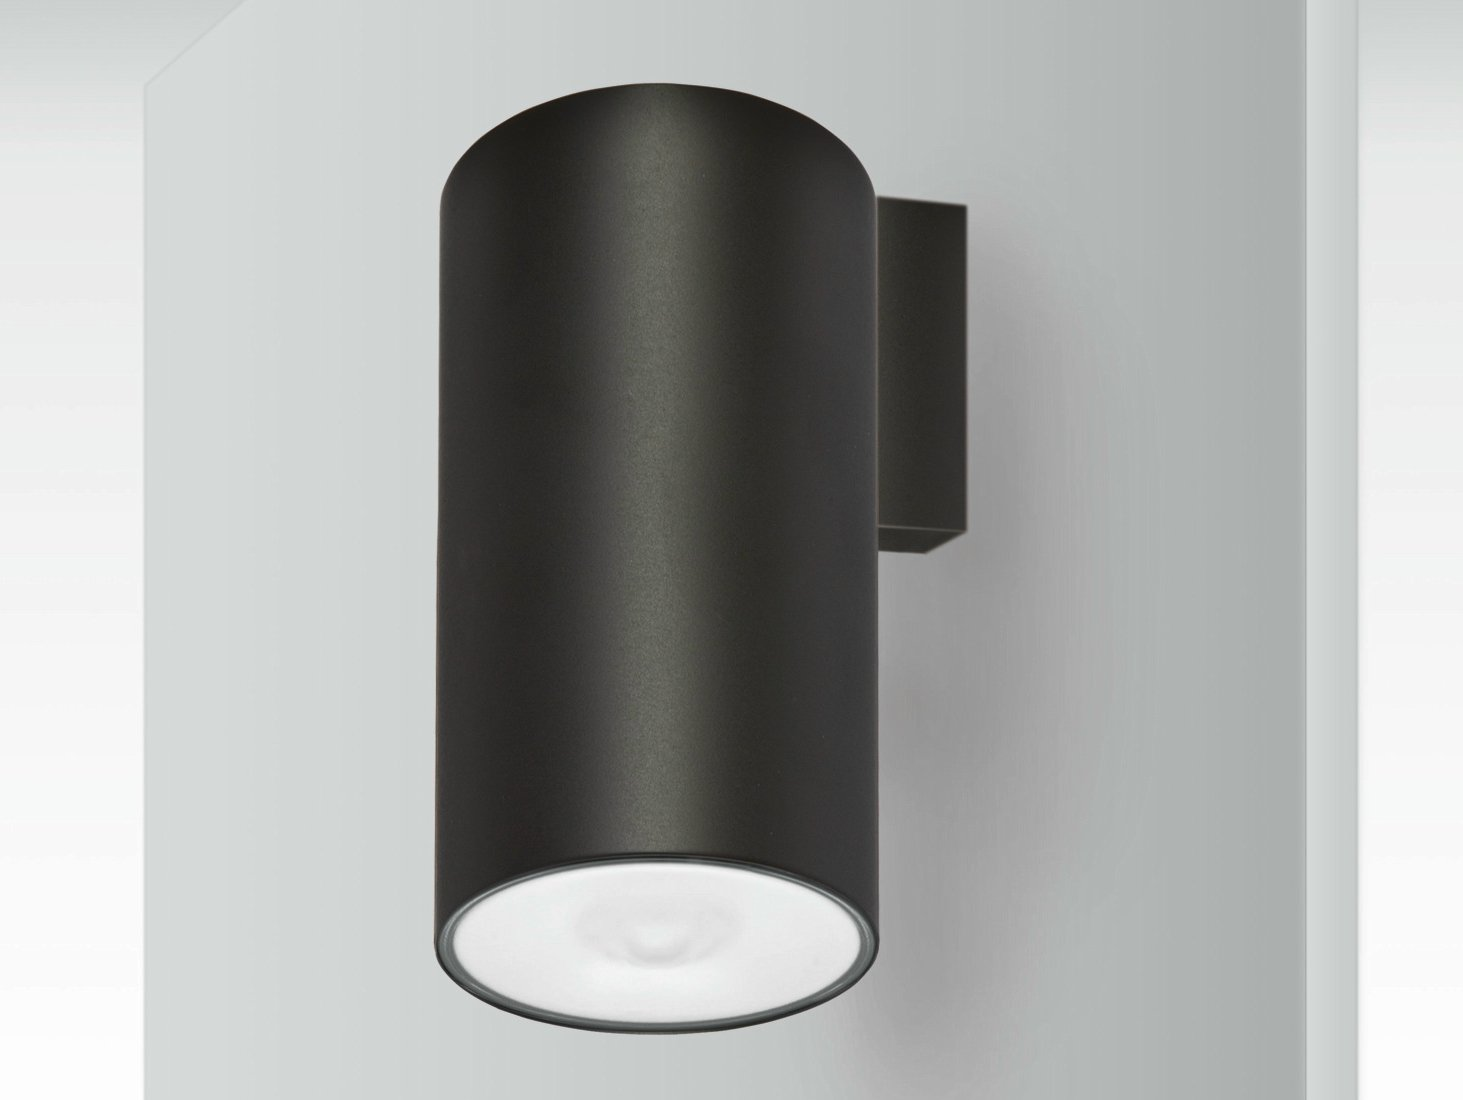 Wall Mounted Emergency Lights : LENS Wall-mounted emergency light by DAISALUX